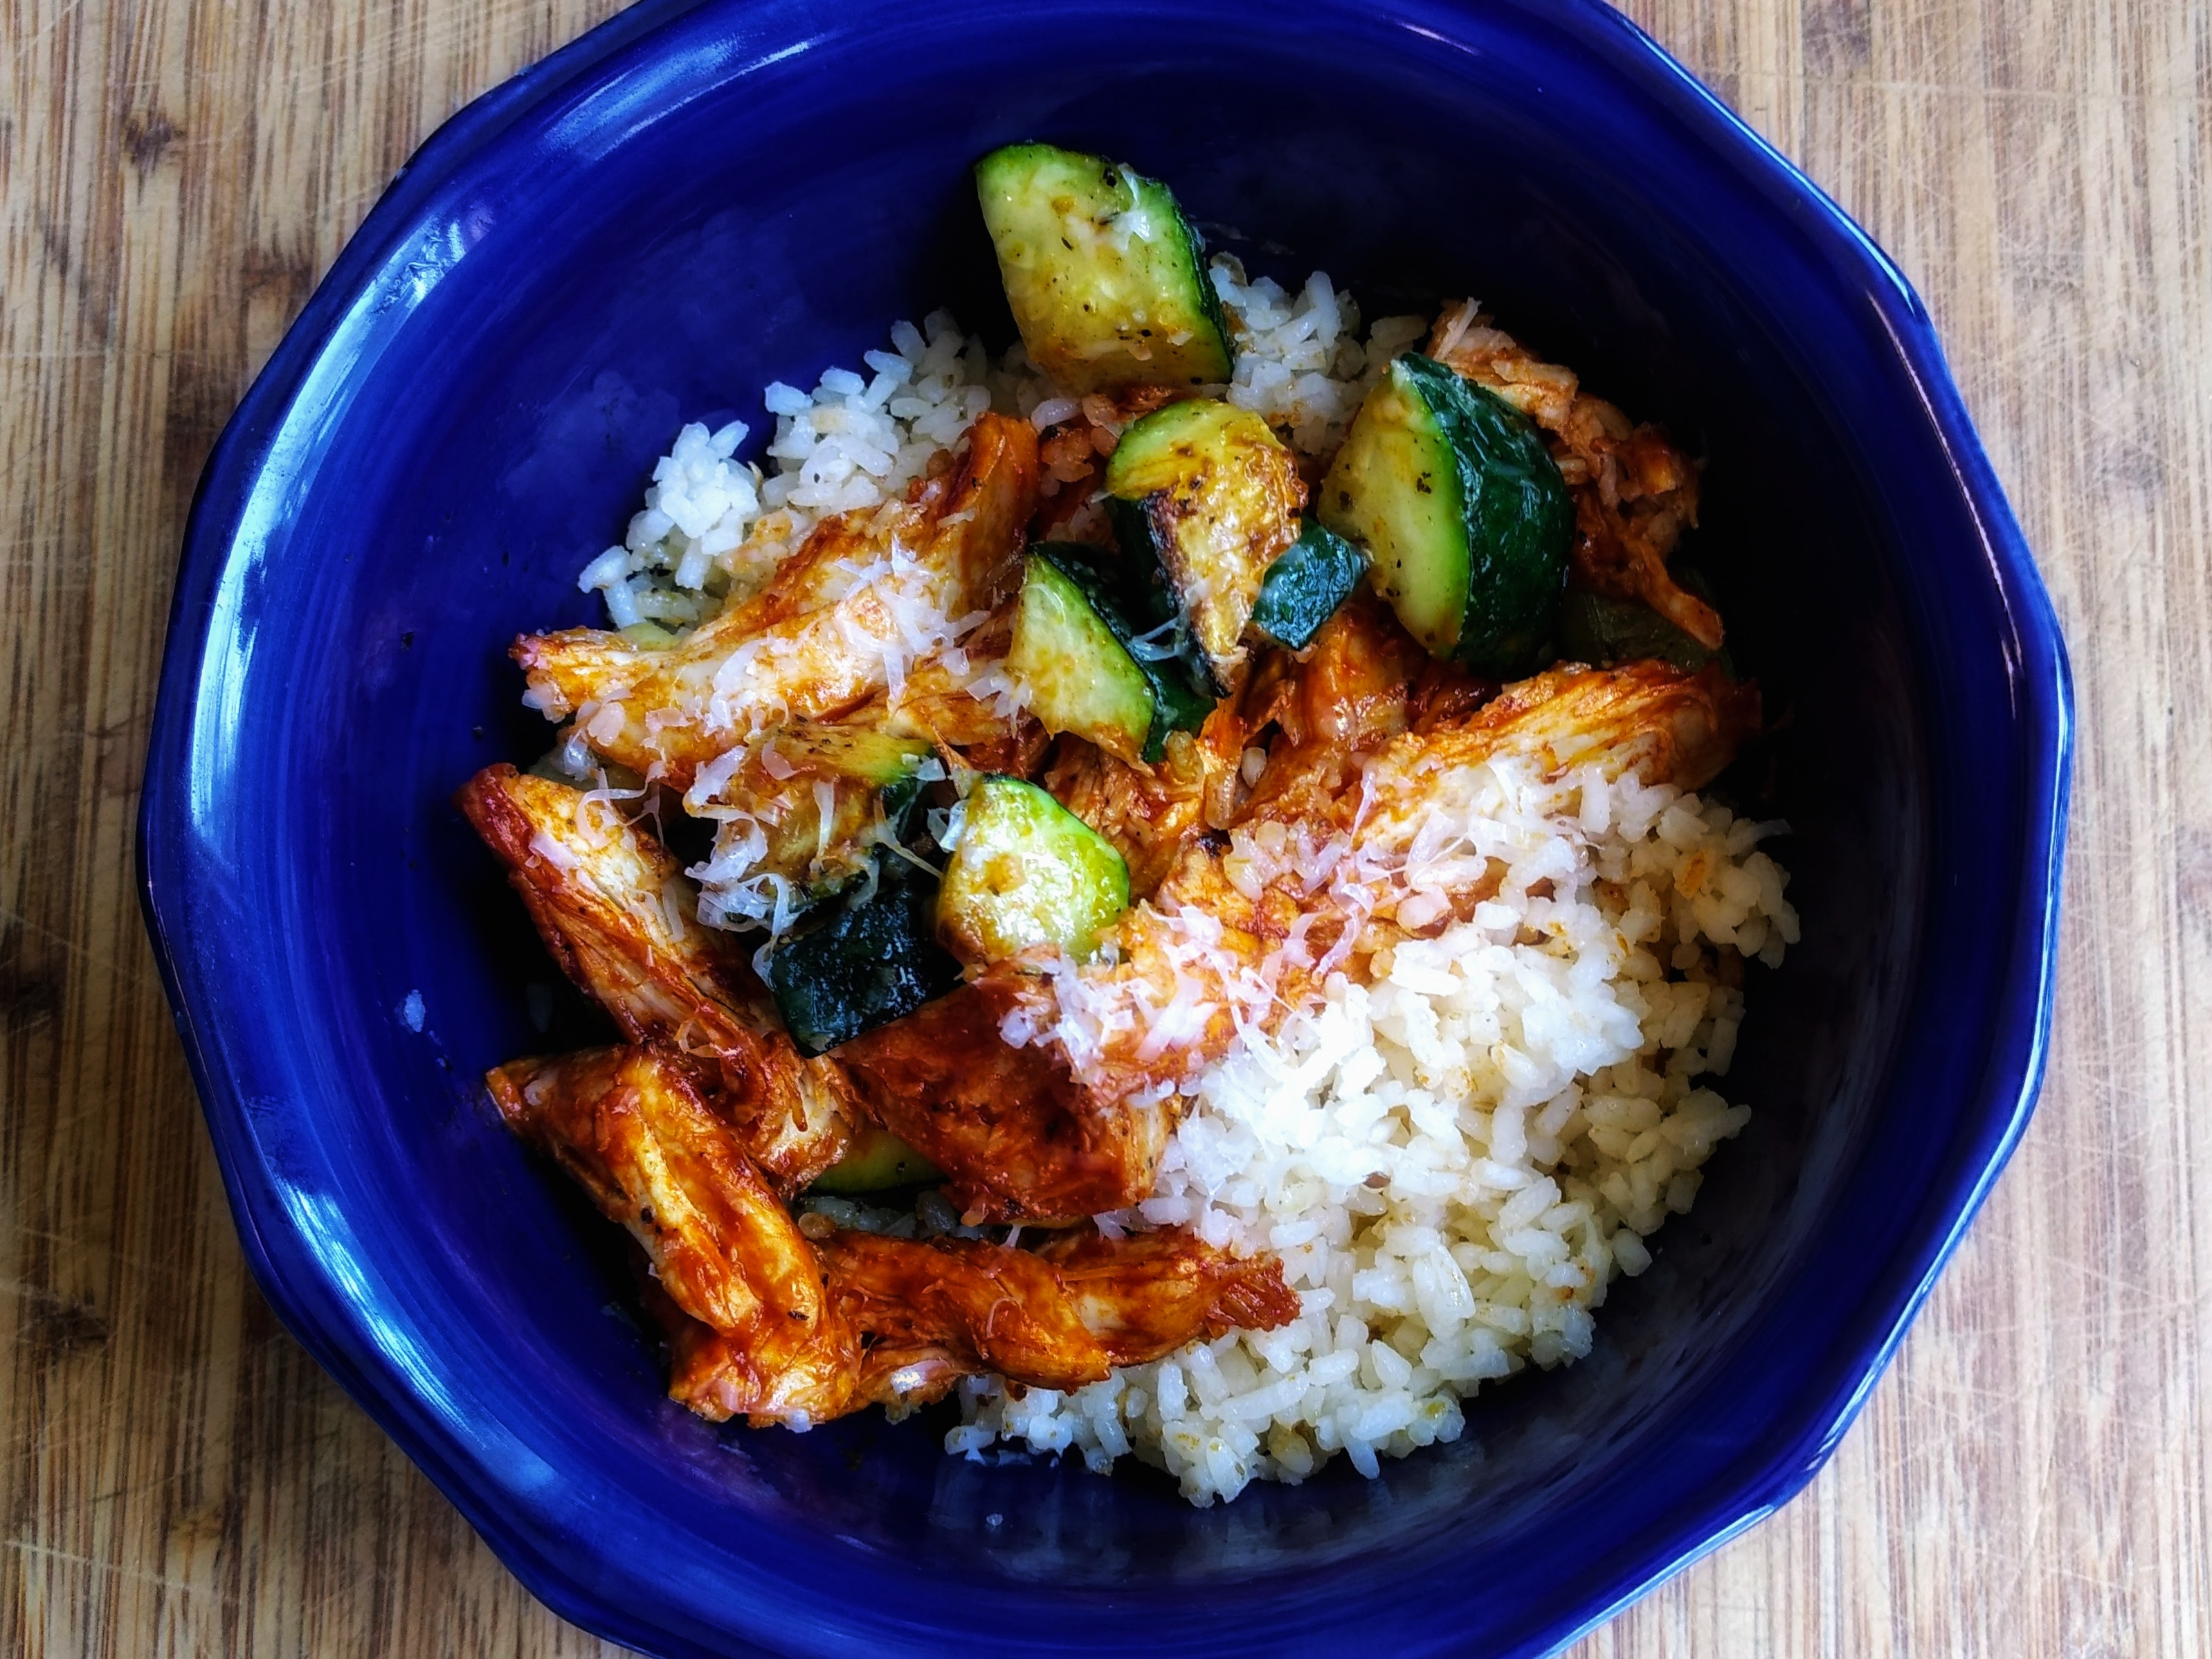 Middlins with Red Chili Chicken and Zucchini